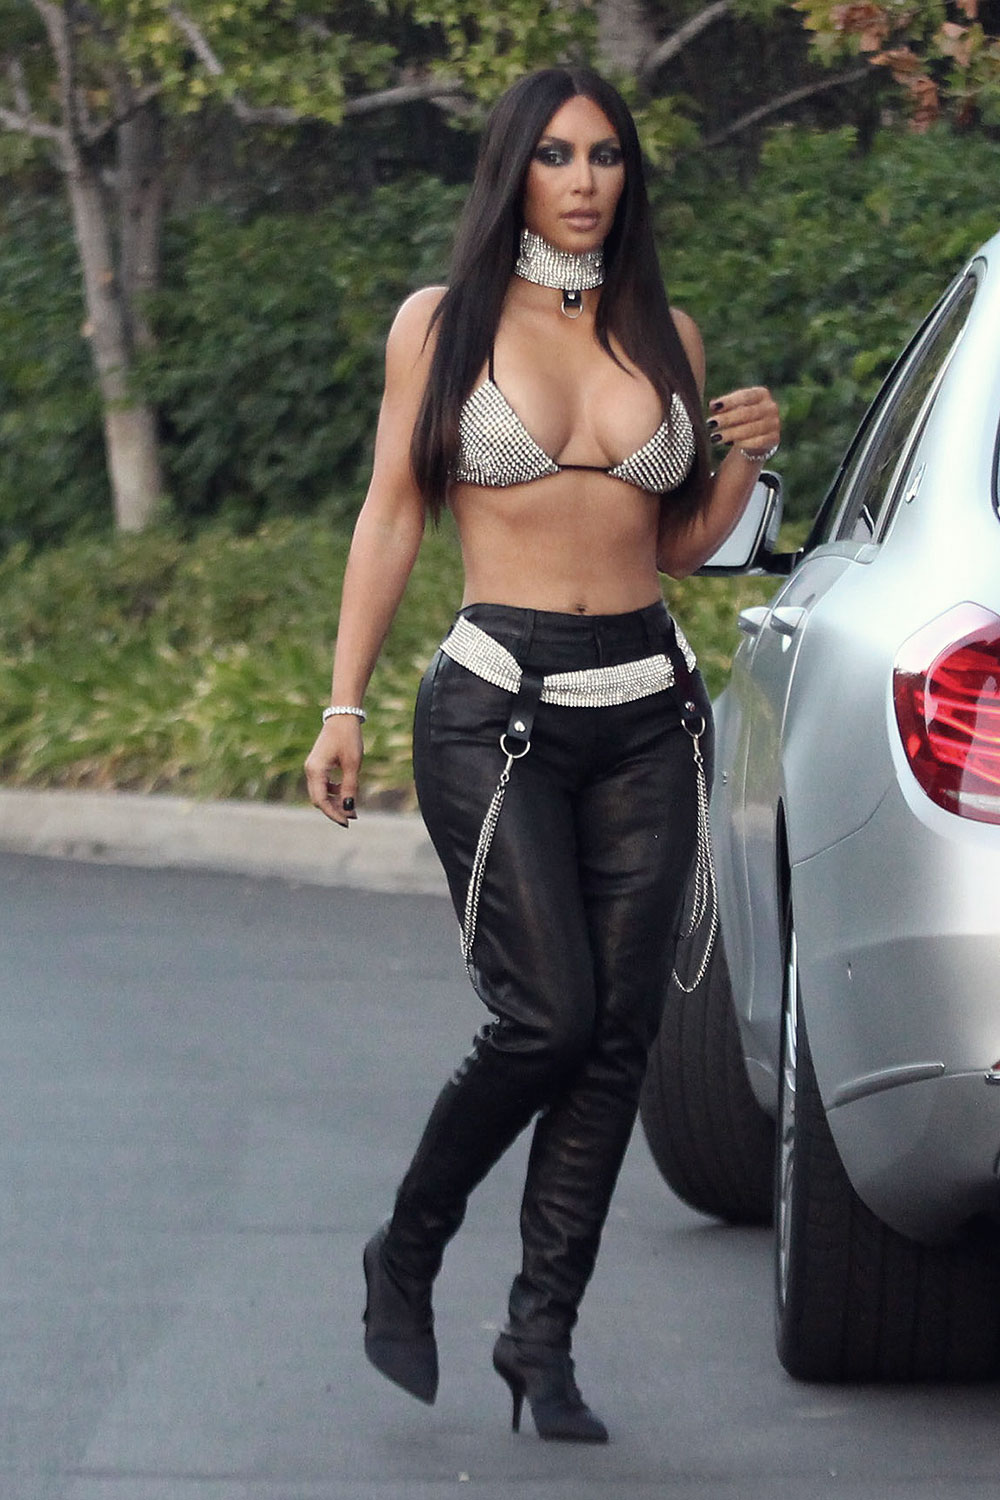 Kim Kardashian dressed as Aaliyah on Saturday night